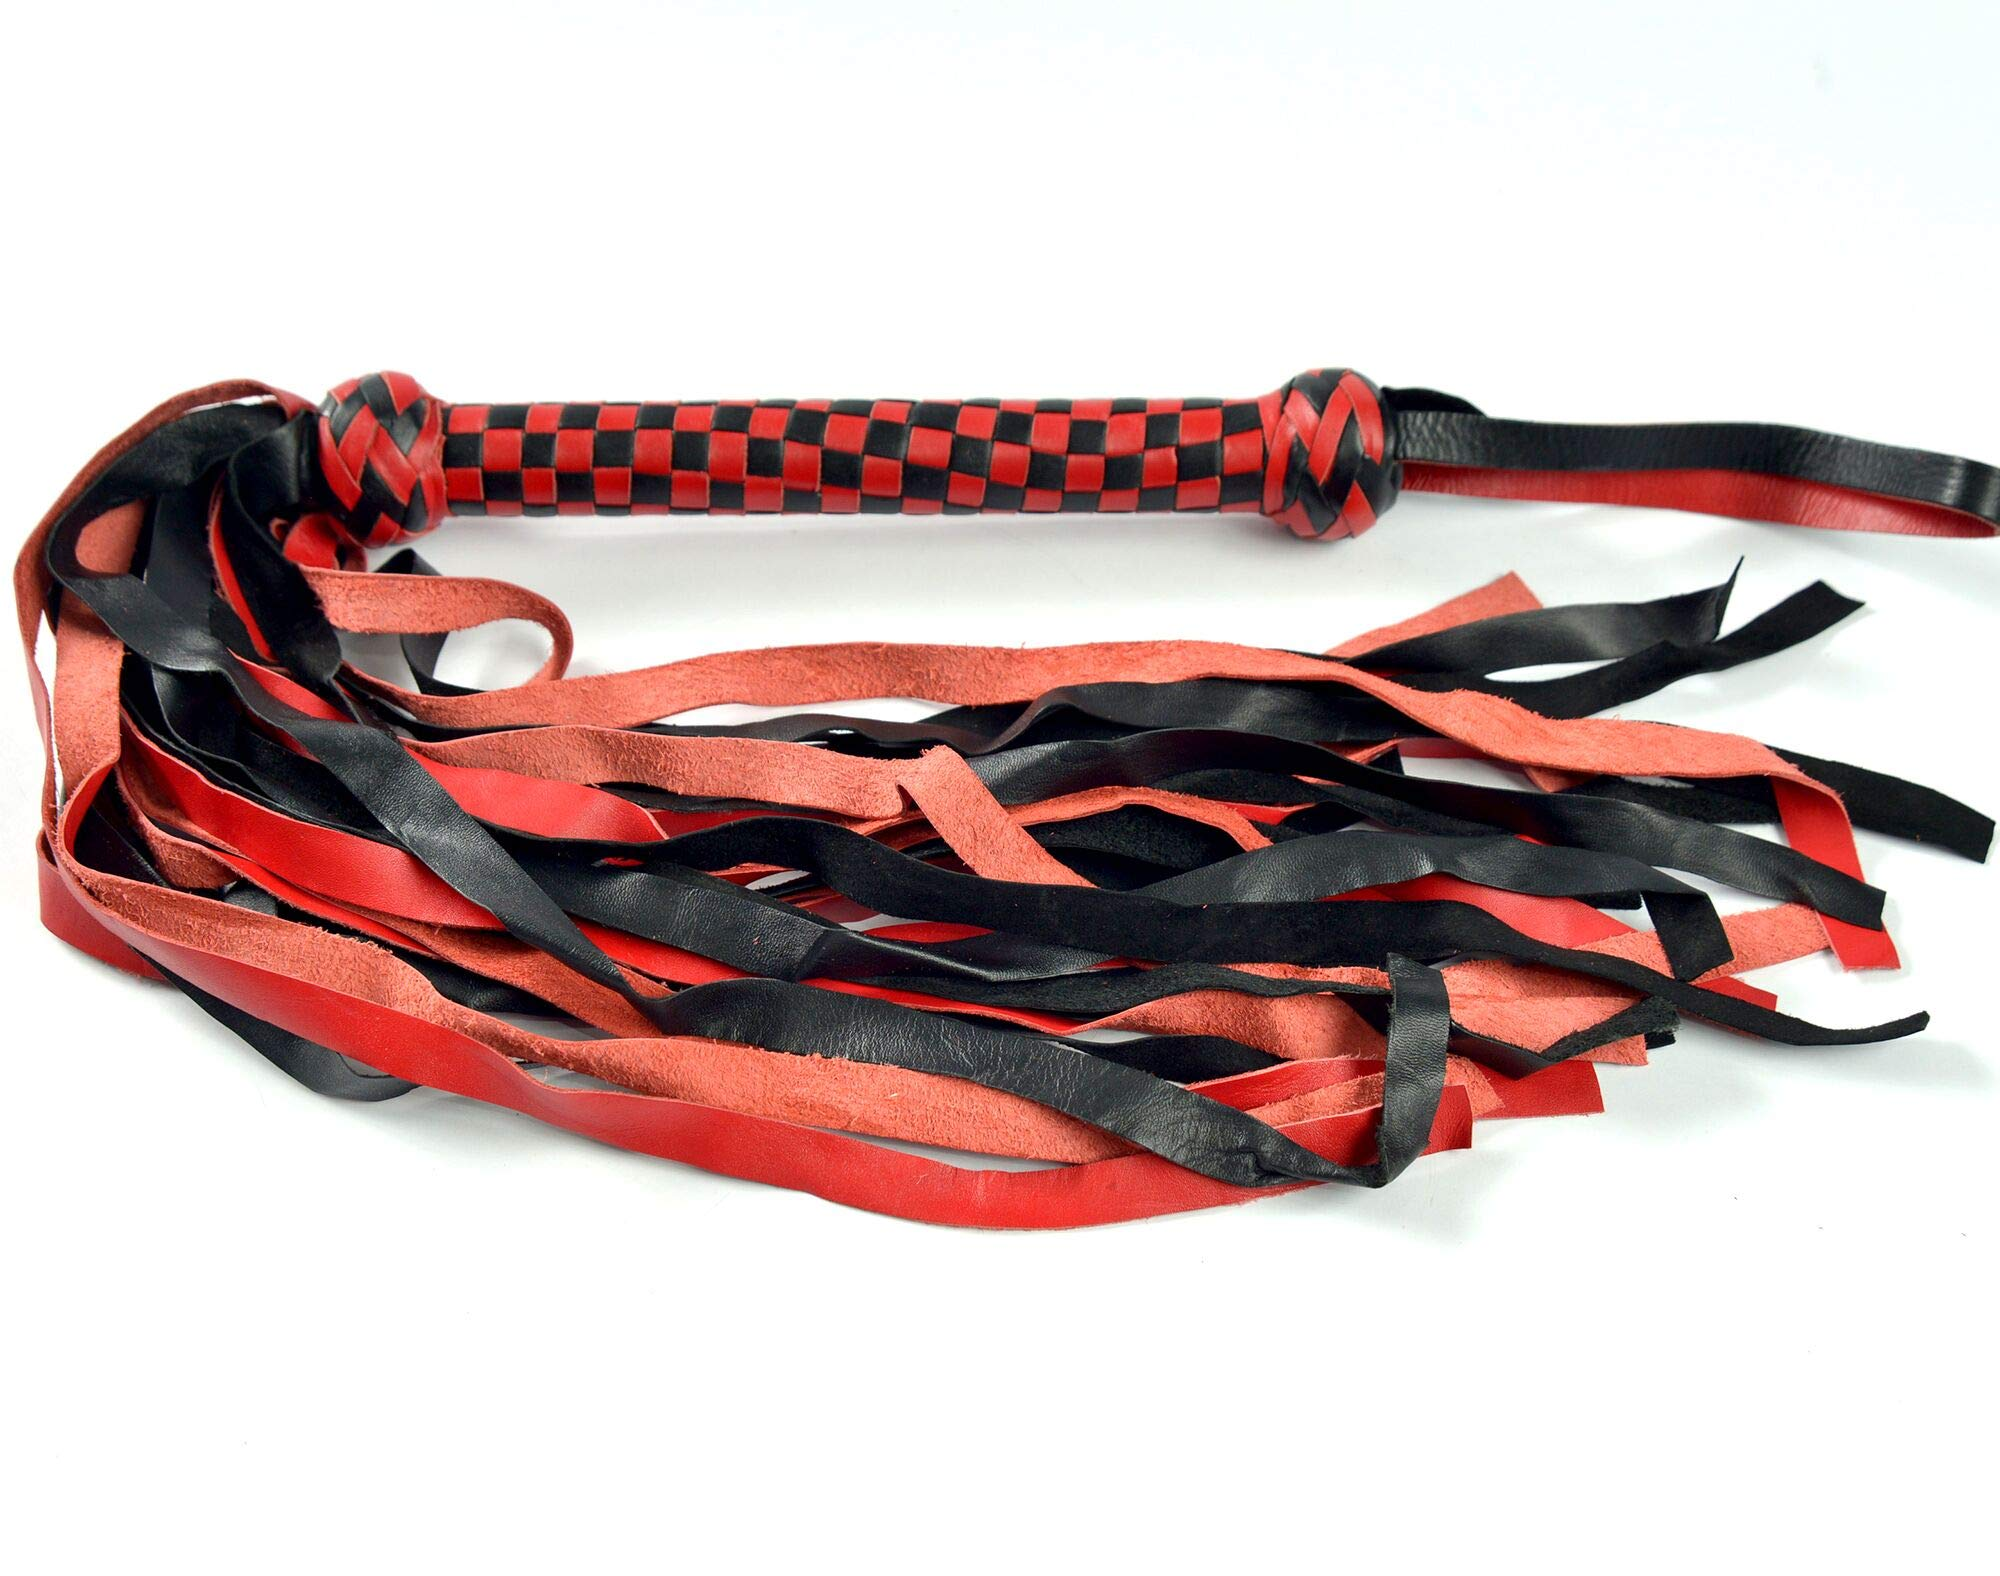 BARE SUTRA Black & Red Braided Flogger | Inside Wood 25 Tails 18'' Long & 2cm Wide | 9'' Long Leather Braided Sturdy Handle & Knob | Handmade Genuine Cowhide Leather Whip | Loop for Hang |29'' Long 300G by BARE SUTRA